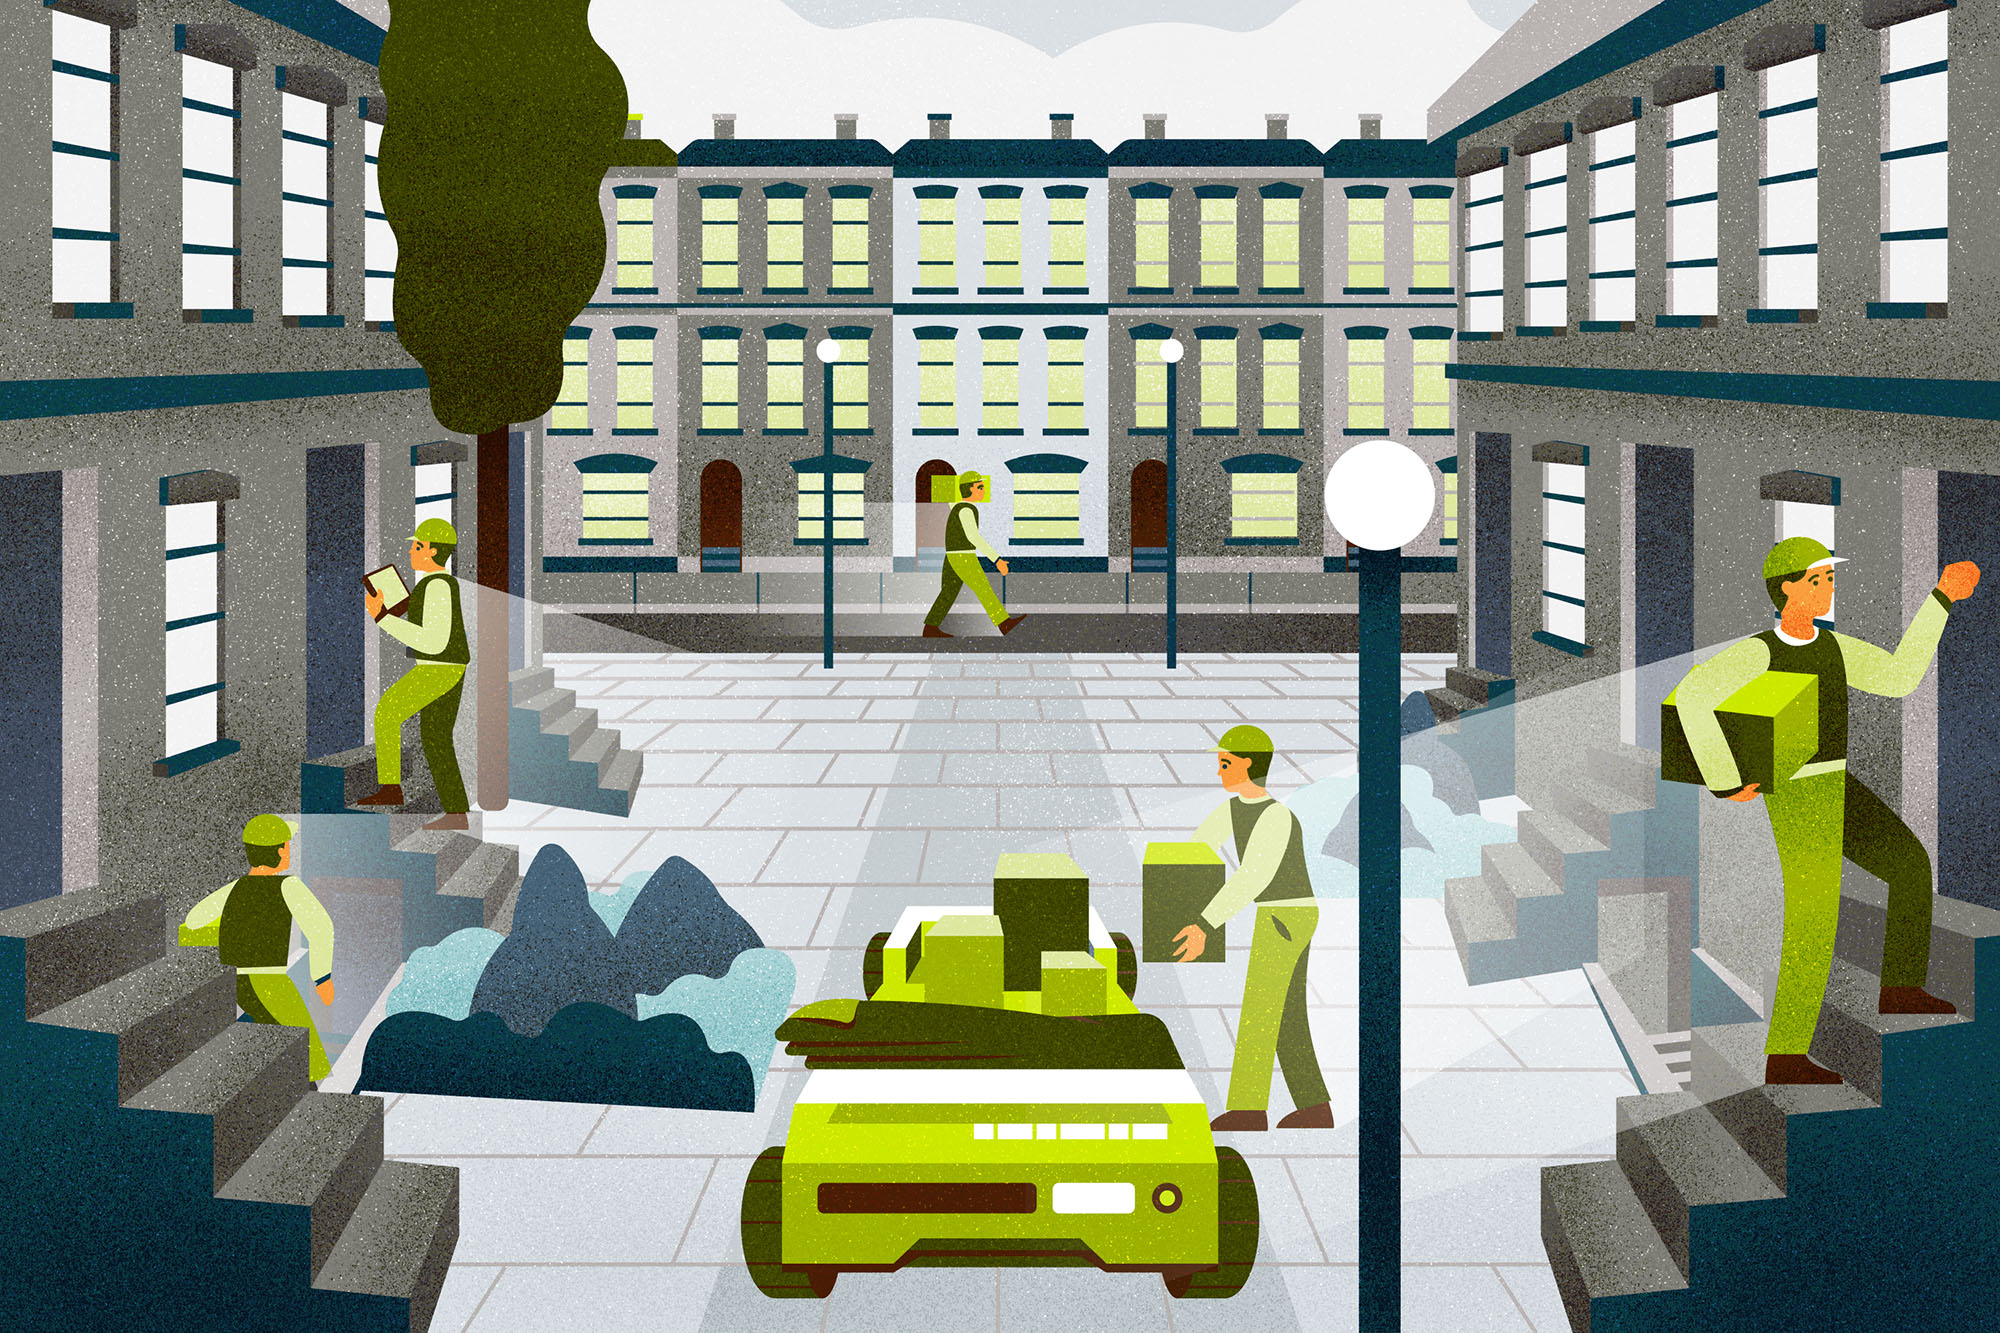 Now, every block has a porter licensed by the city. Sally's porter meets larger 'conveyor' bots at the curb, takes her returns, and even recycles packaging. In the rare instance when dispatch algorithms send something when she isn't there, the porter can hold items for redelivery when she returns.